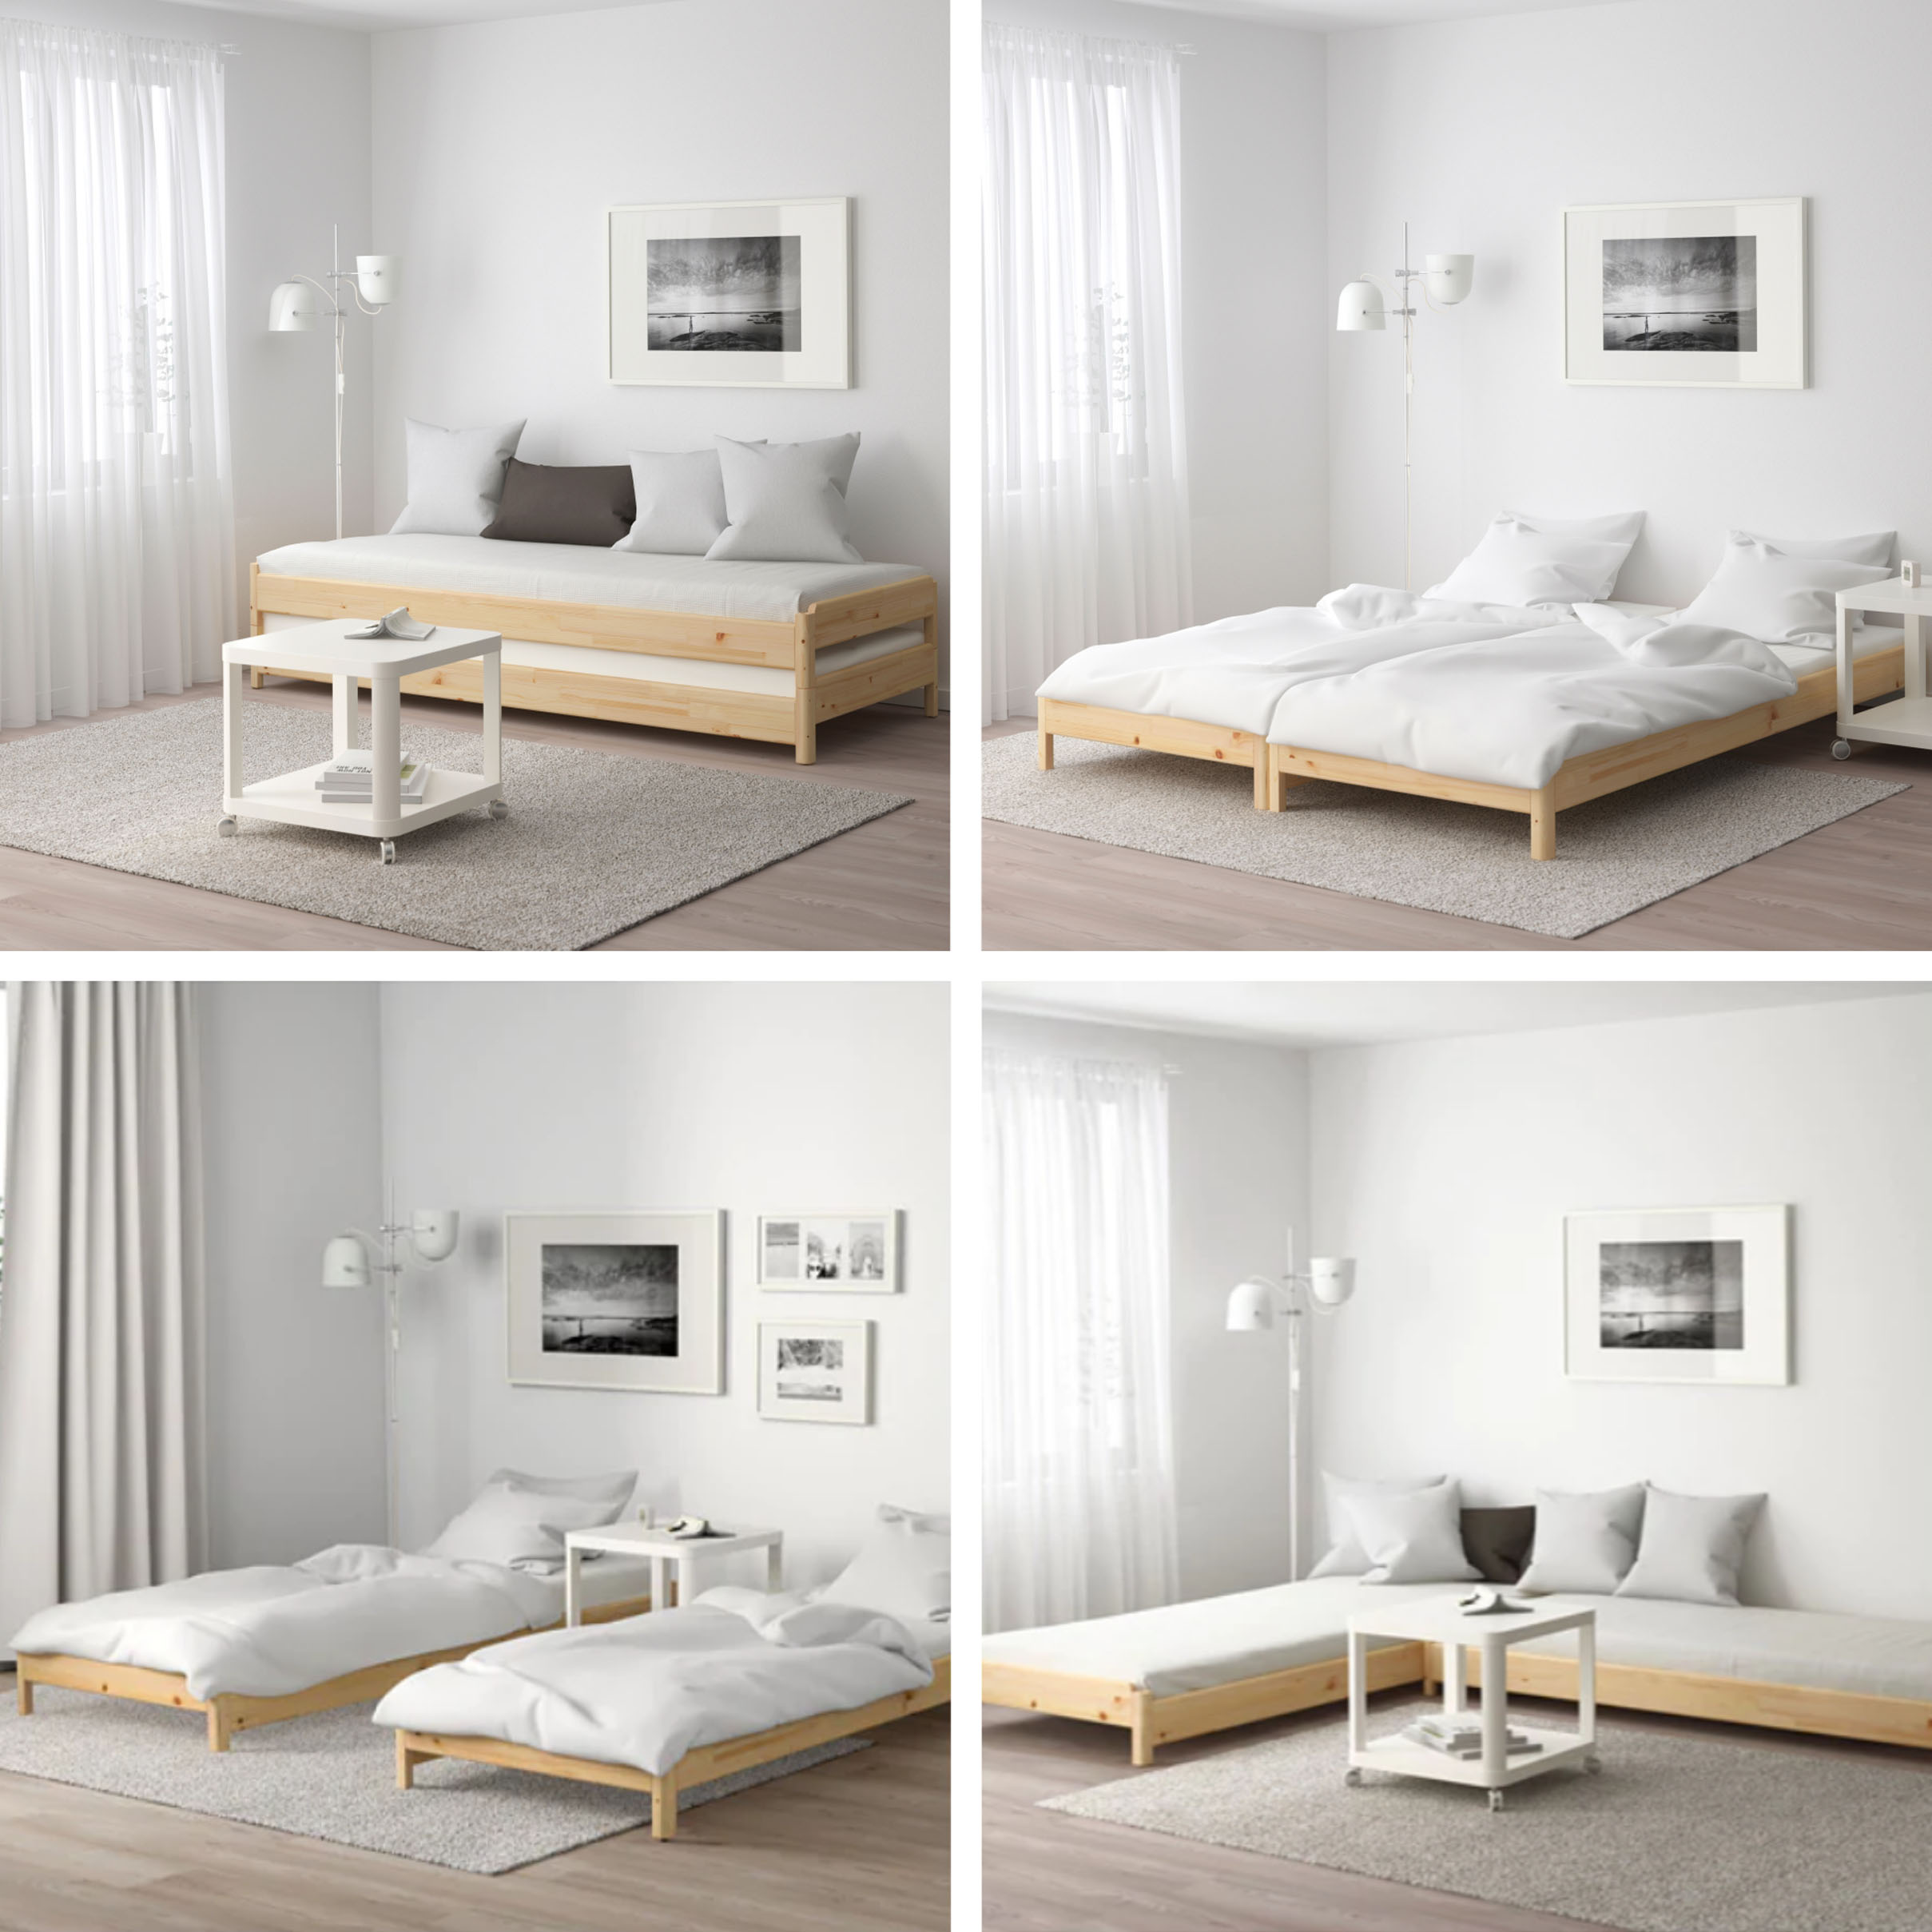 Fold Away Bed Ikea Here S Some Space Saving Hacks For Homes With Limited Room